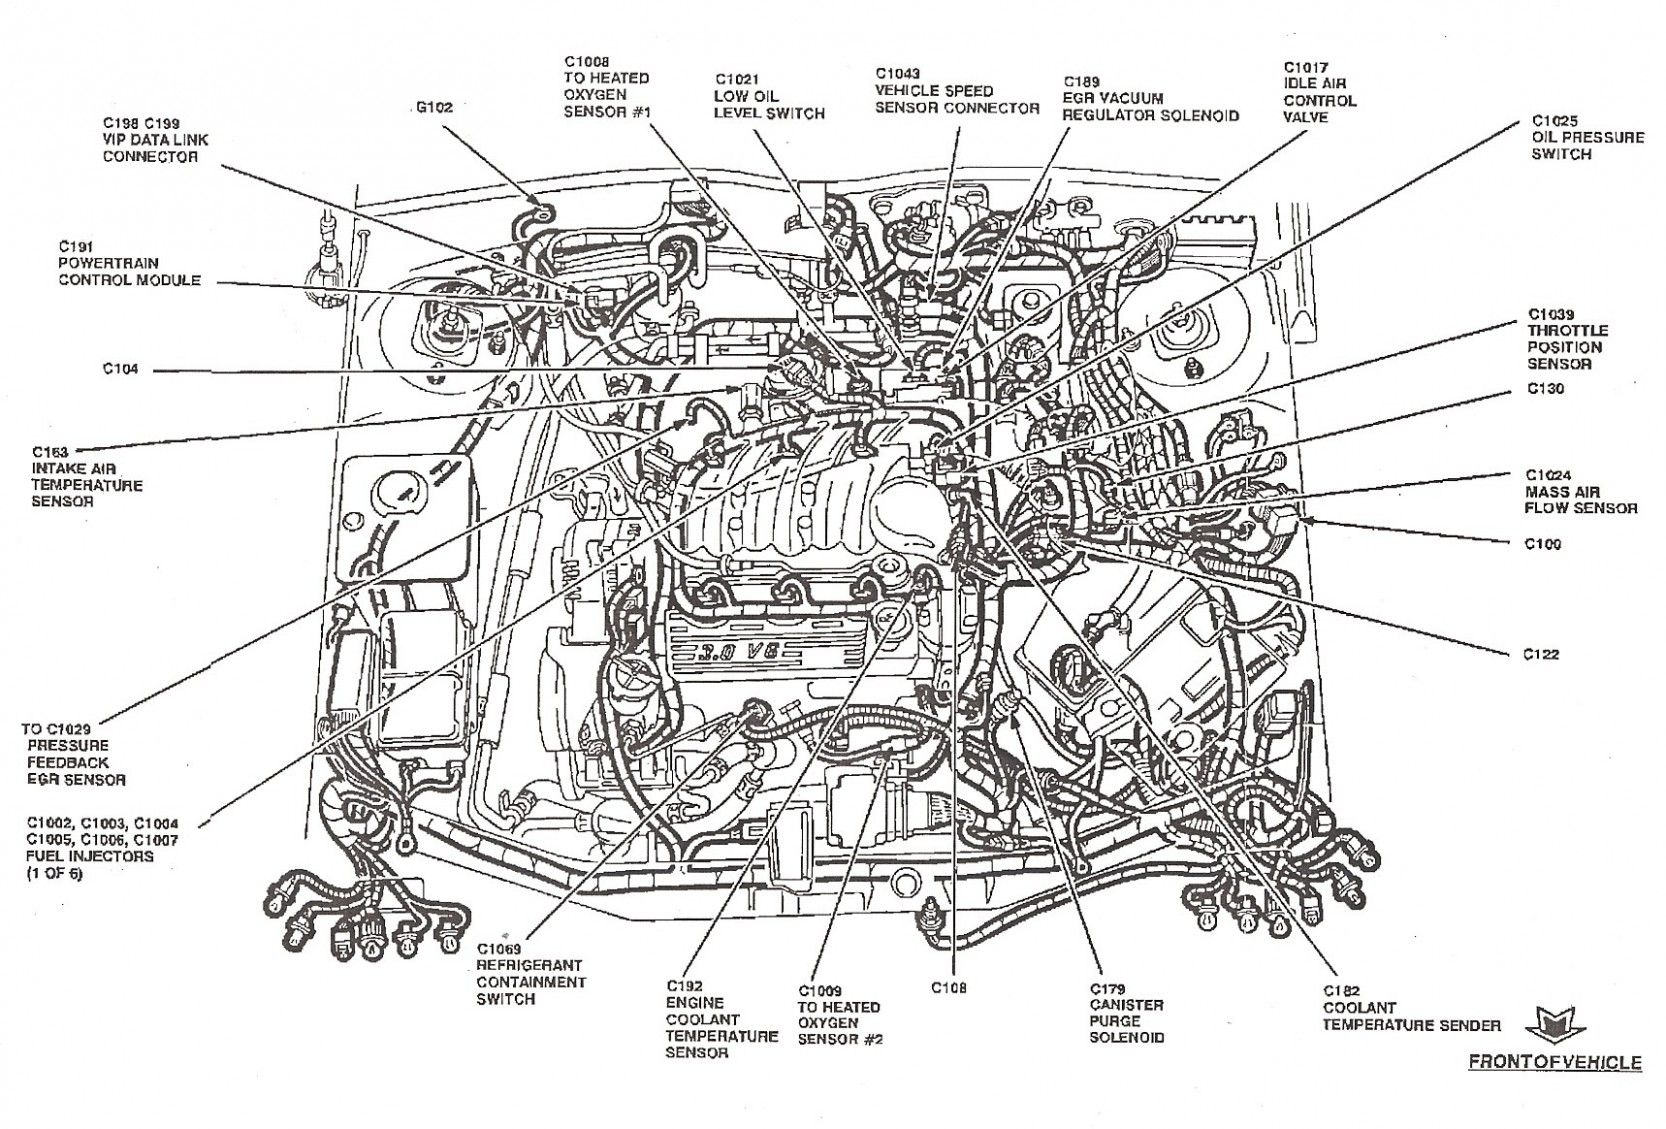 7 Ford Focus Zx7 Engine Diagram di 2020Pinterest